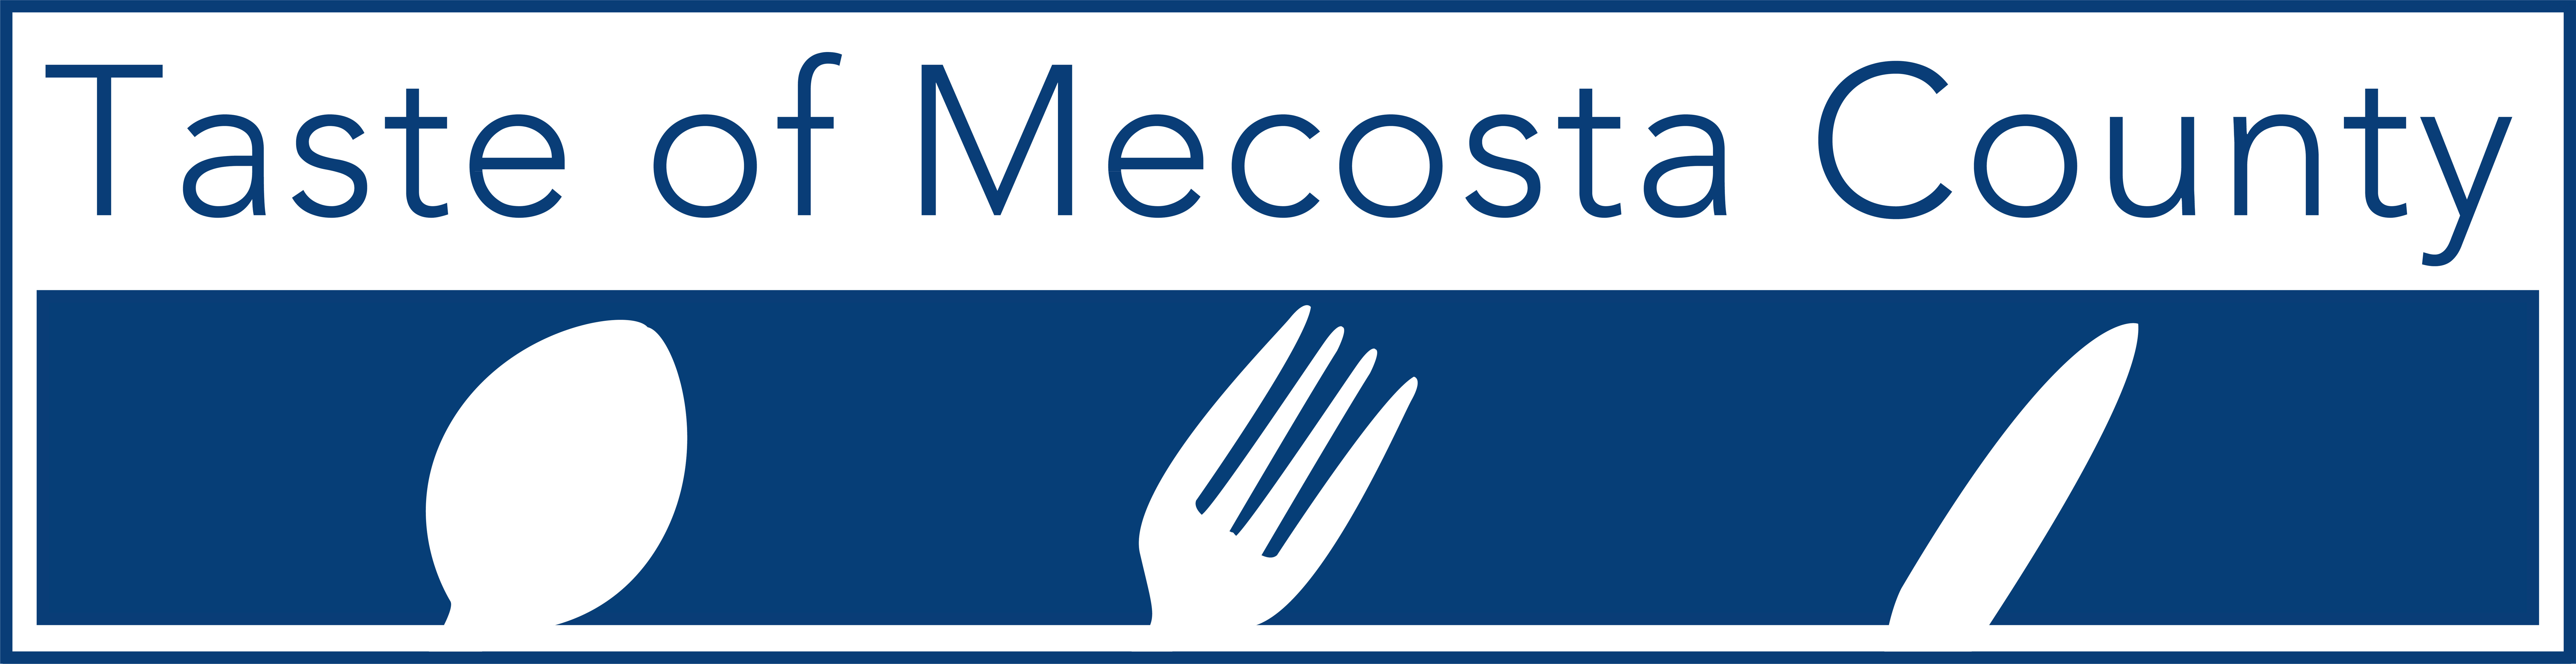 mecosta dating Join or log into facebook email or phone password forgot account log in do you want to join facebook sign up sign up.